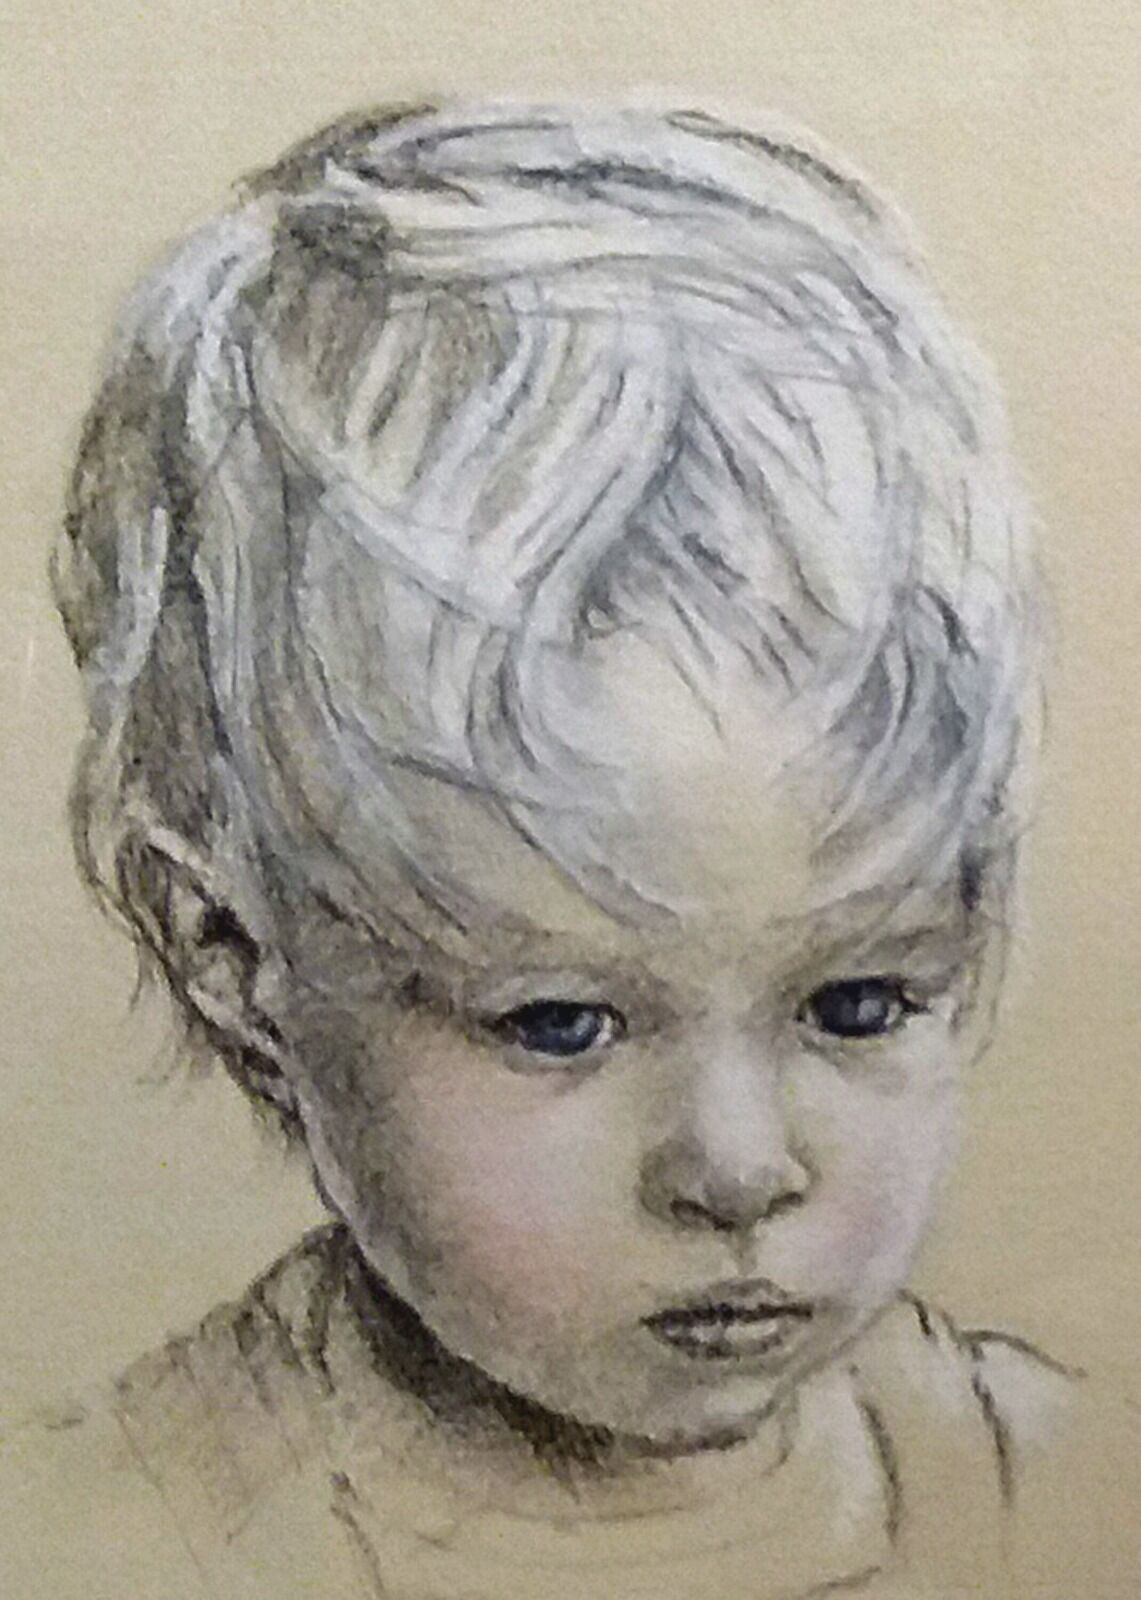 Portrait in charcoal and pastel